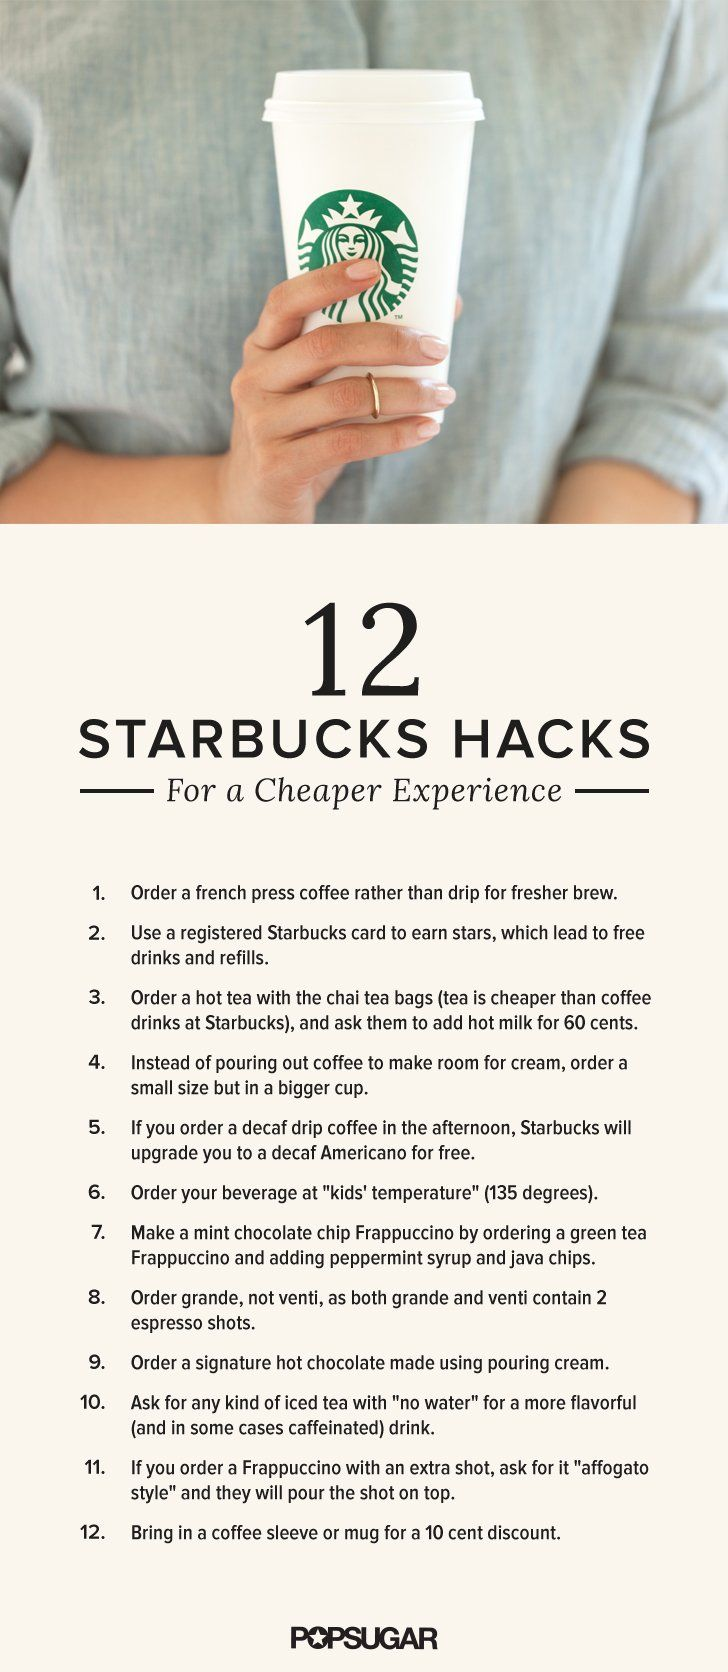 Pin for Later: 12 Starbucks Hacks For a Cheaper (and More Caffeinated) Coffee Experience